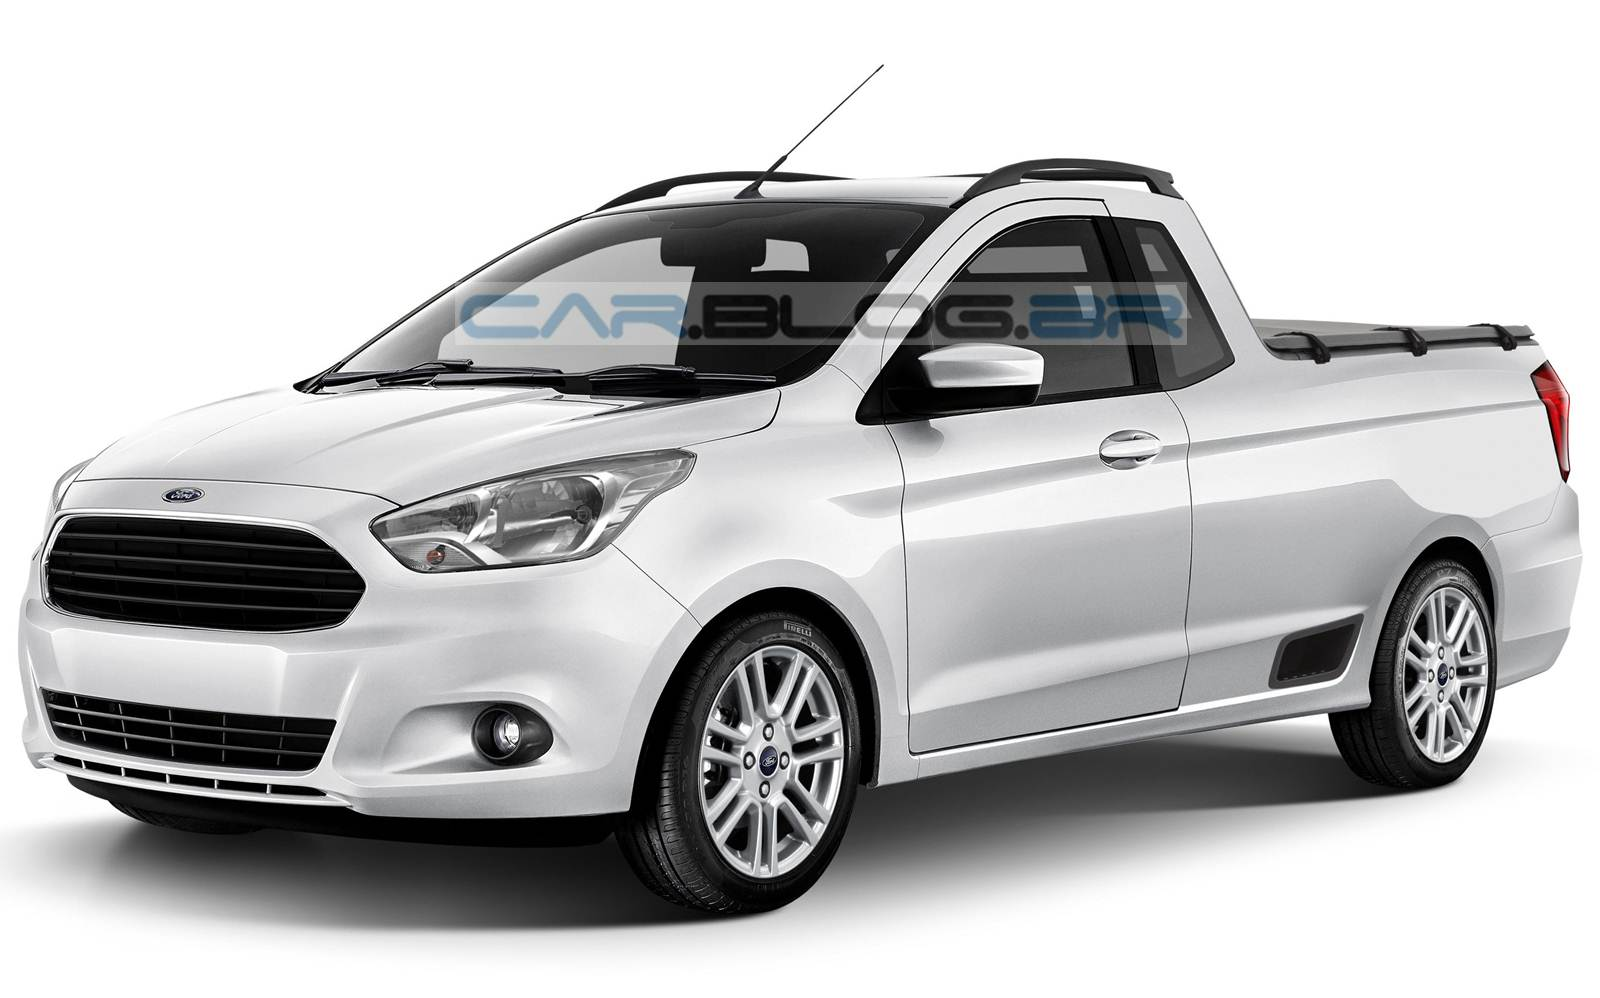 ford courier 2015 review amazing pictures and images look at the car. Black Bedroom Furniture Sets. Home Design Ideas